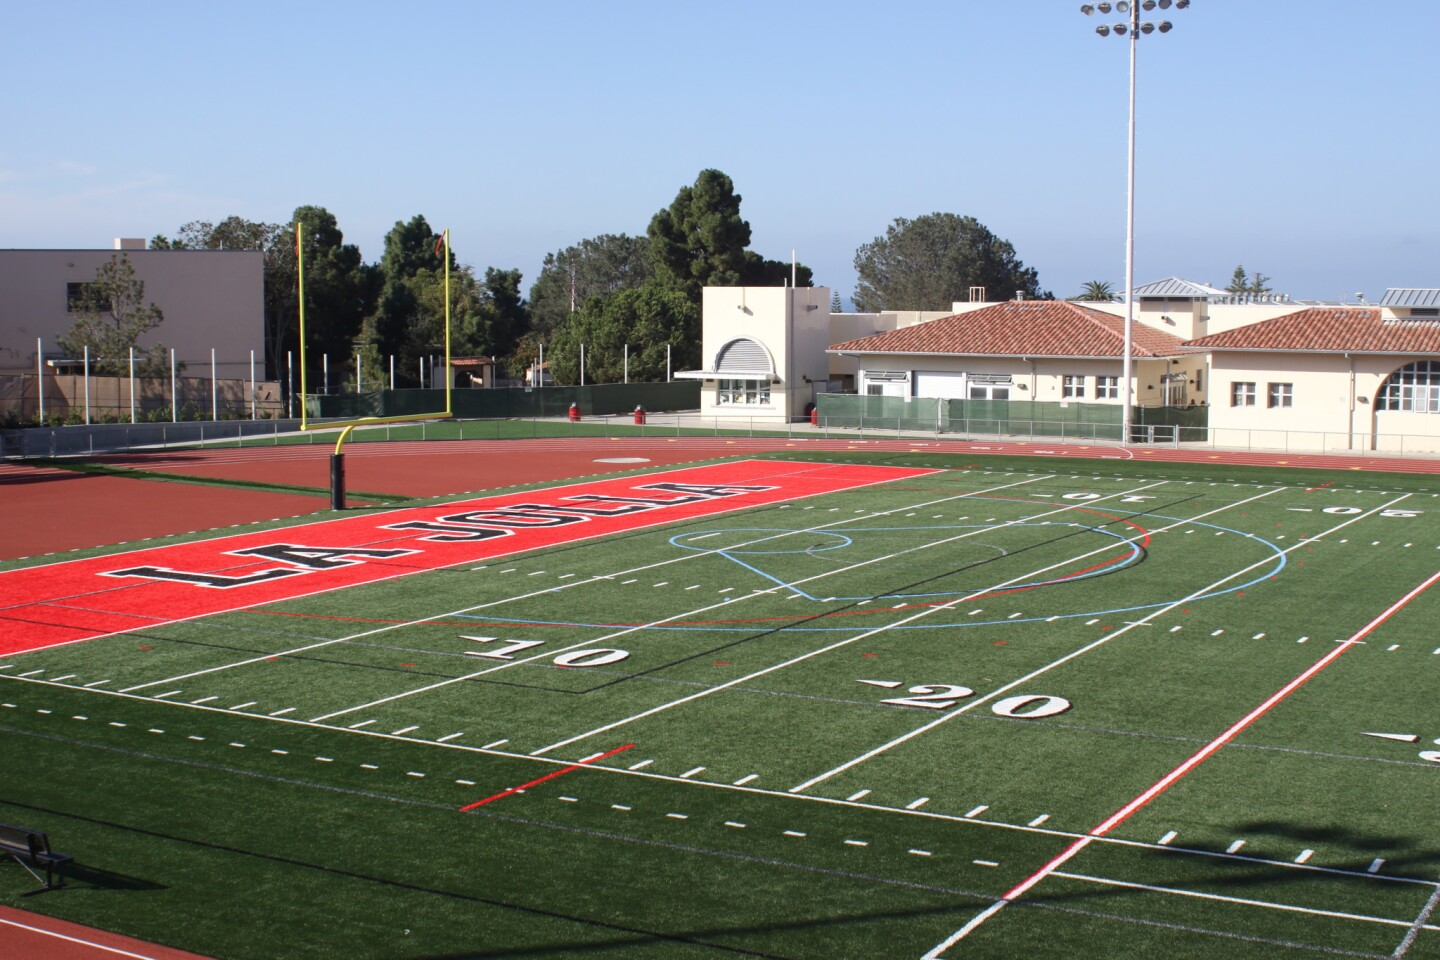 The new field is painted with lines related to different sports, such as lacross and field hockey.